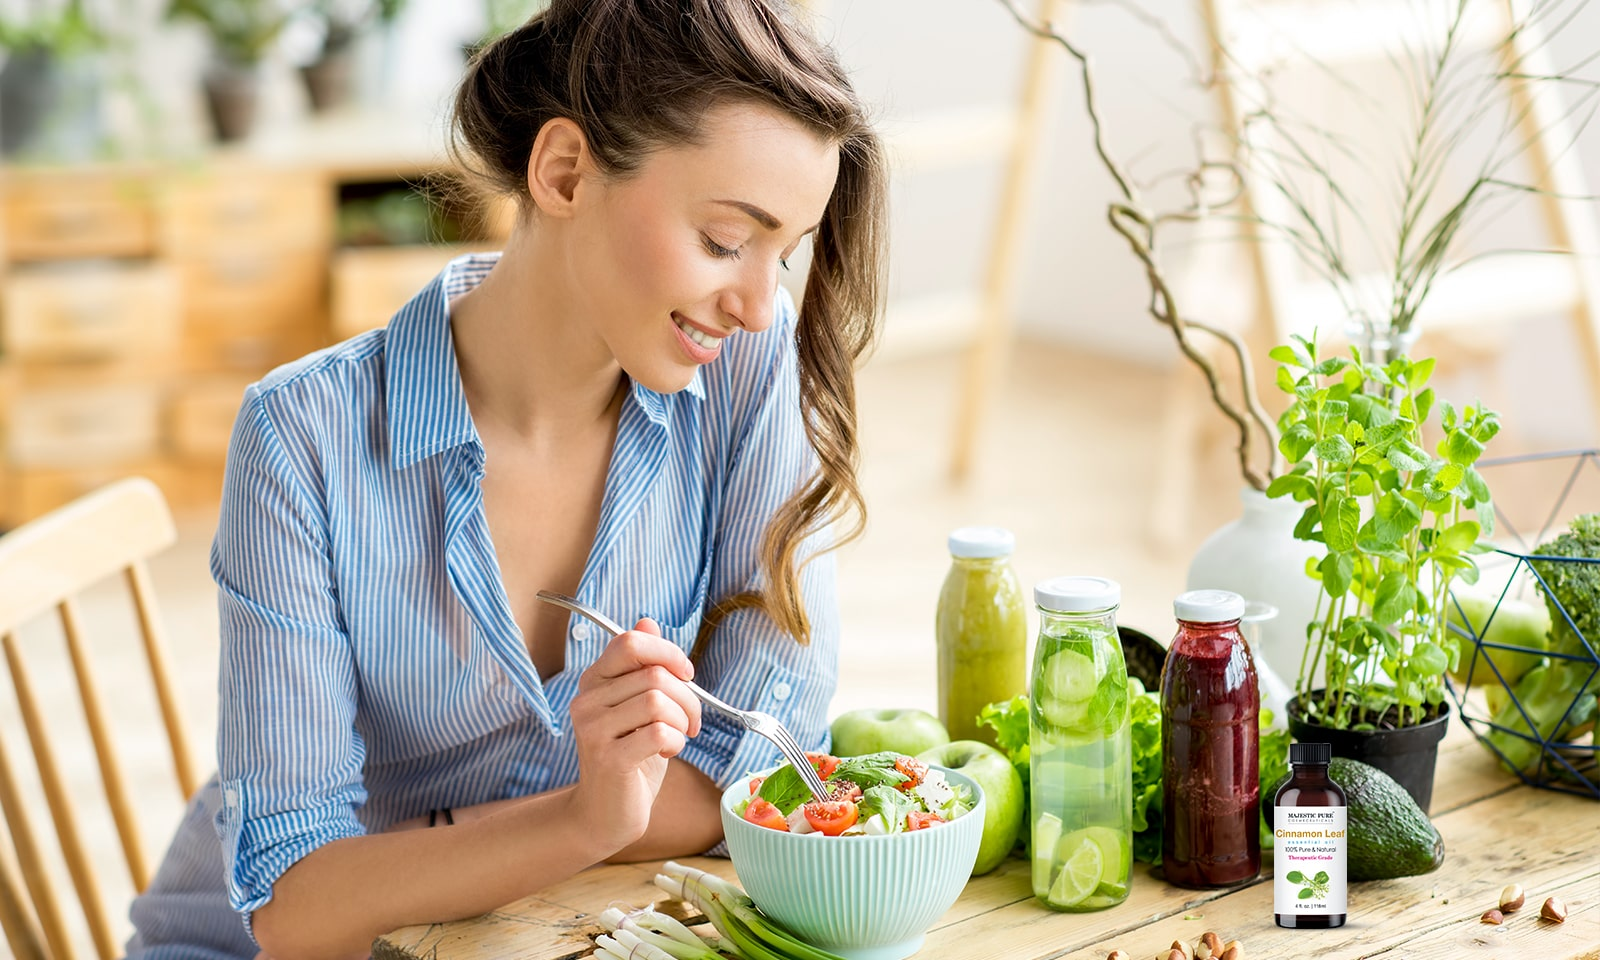 tips-to-switch-to-natural-deodorant-girl-eating-salad-healthy-diet